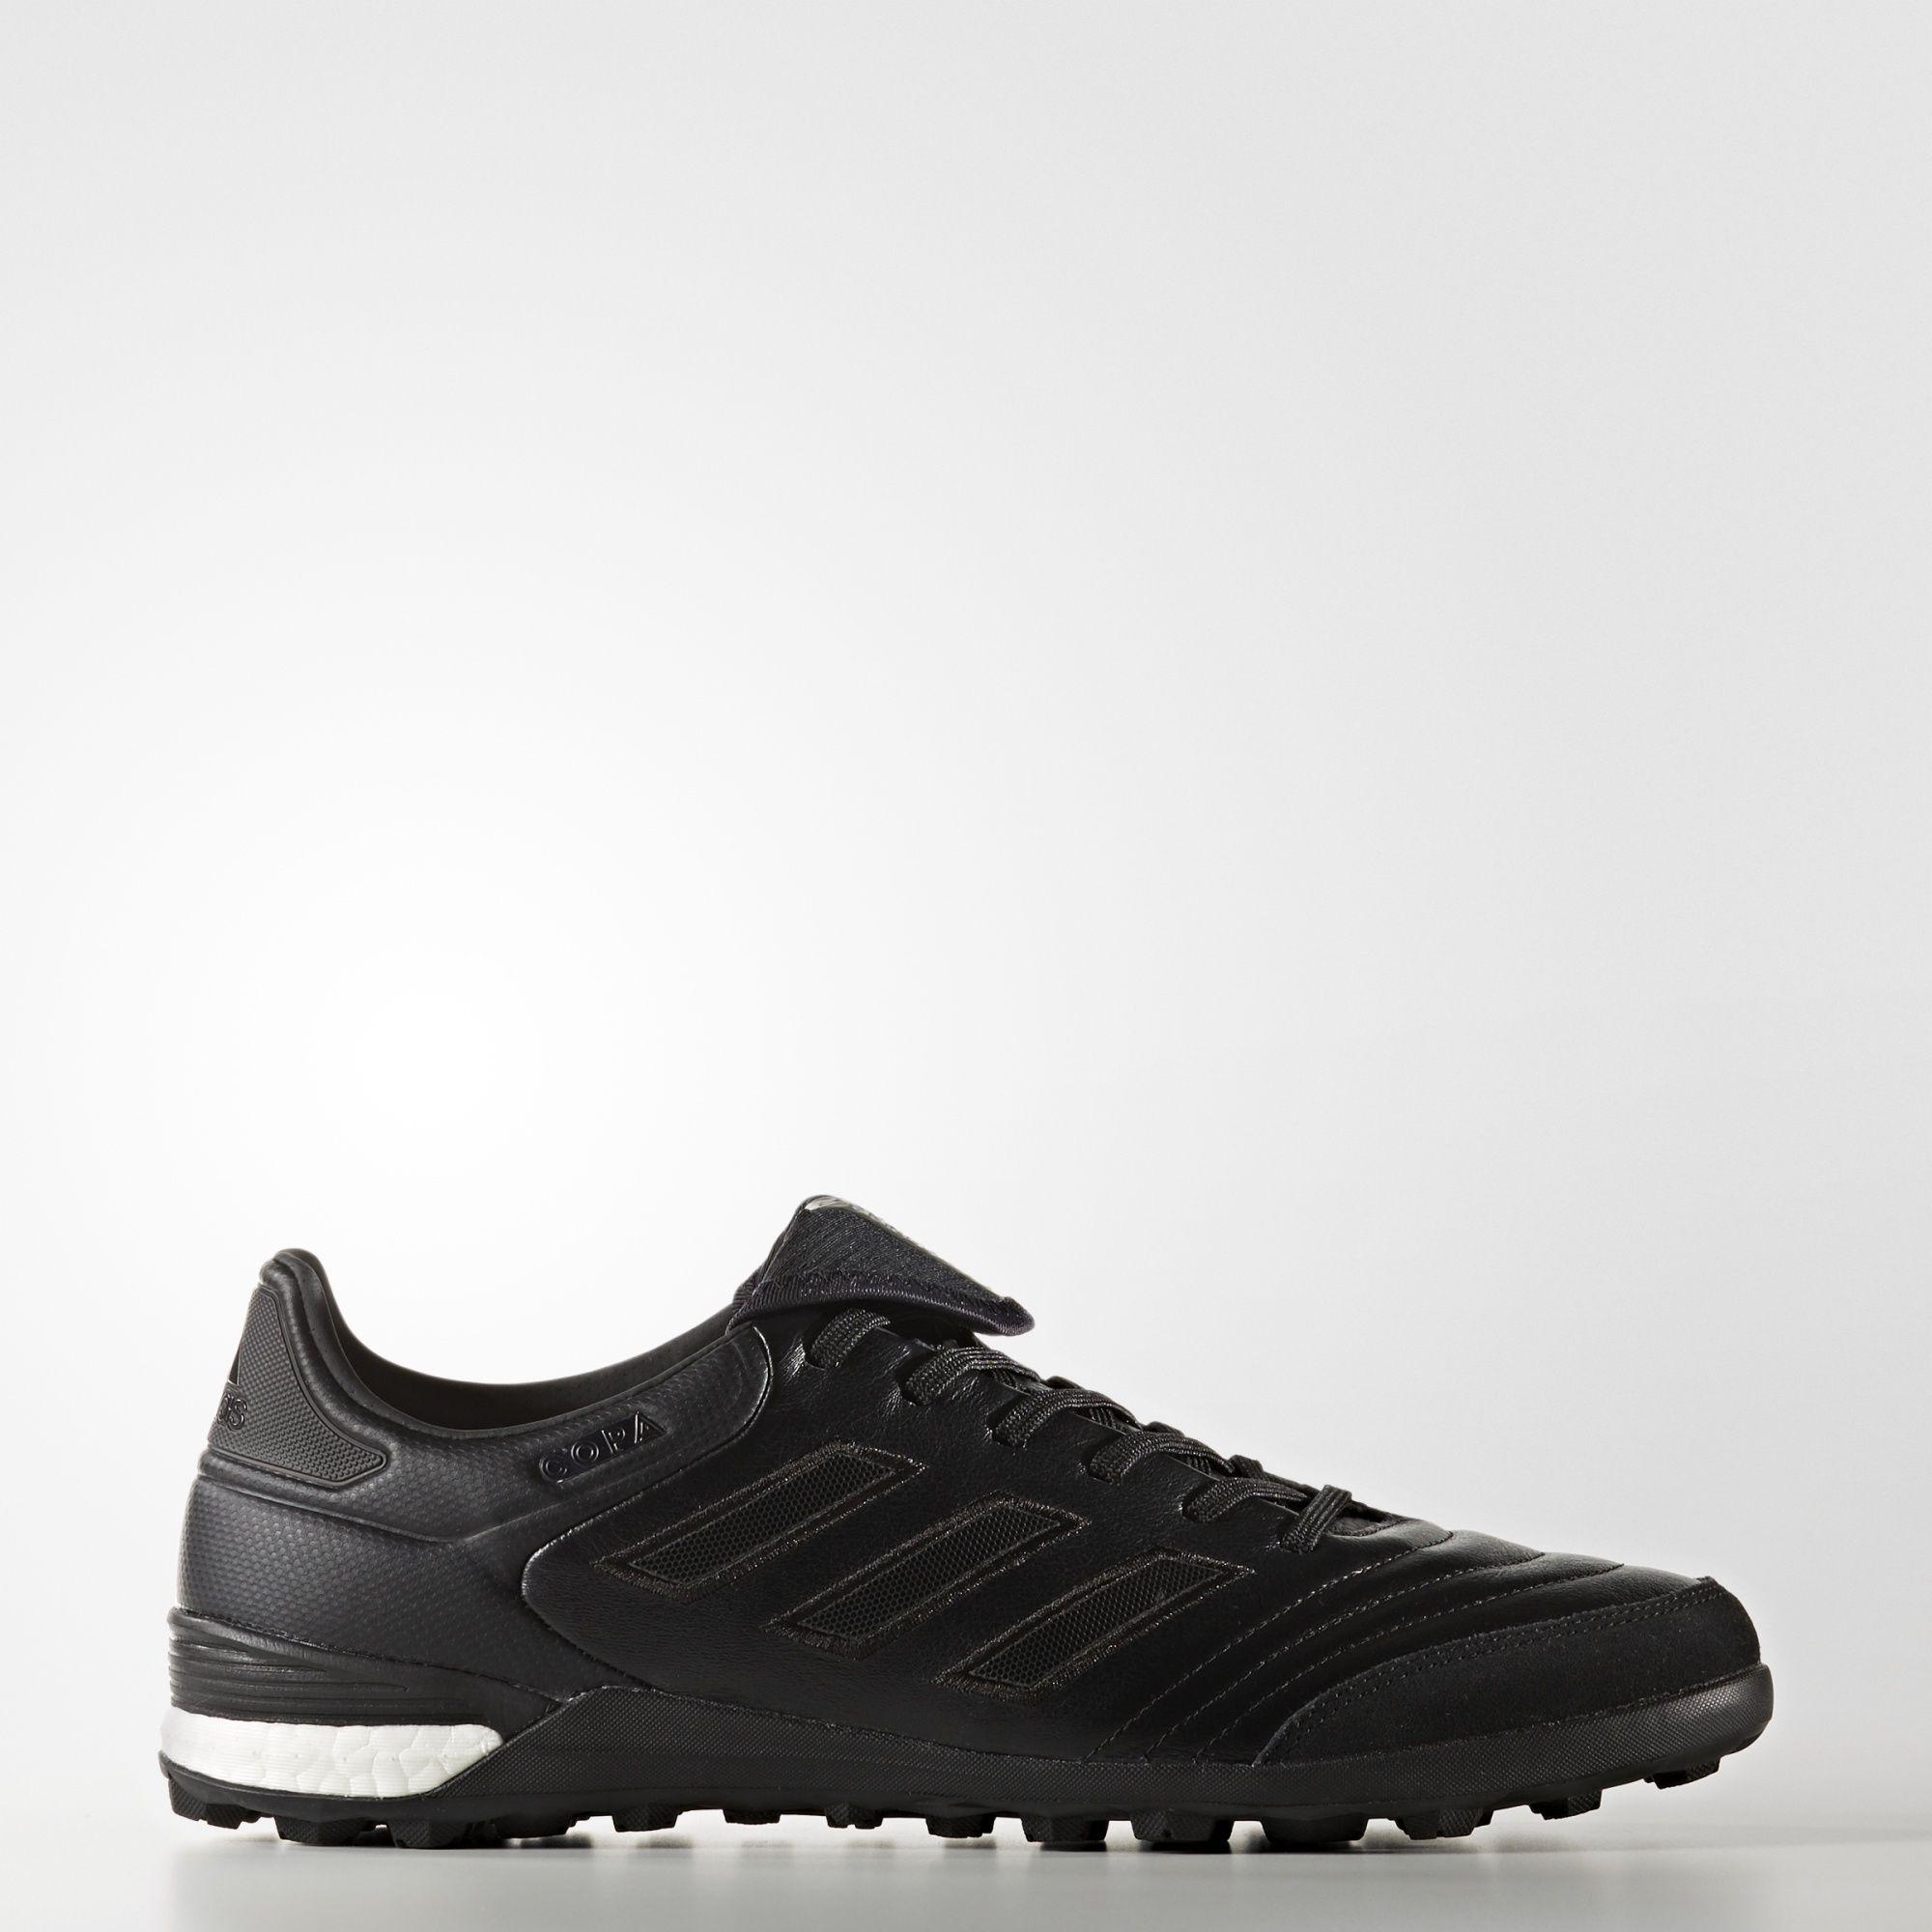 06ce96f66 adidas Copa Tango 17.1 Turf Shoes in Black for Men - Lyst